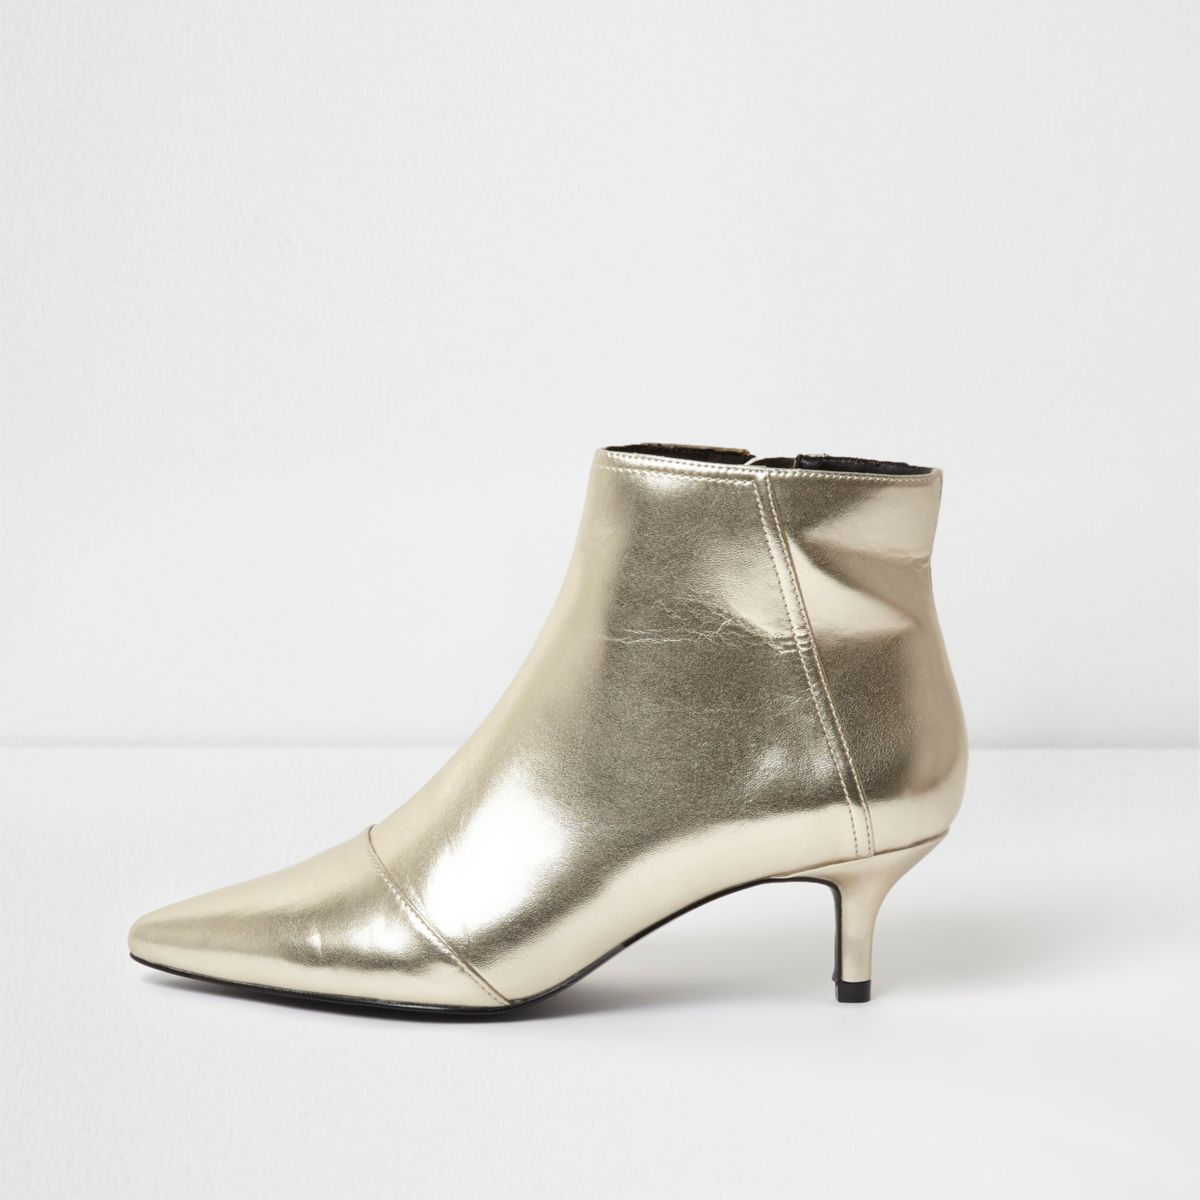 Gold metallic pointed kitten heel ankle boots - Gifts - Sale - women